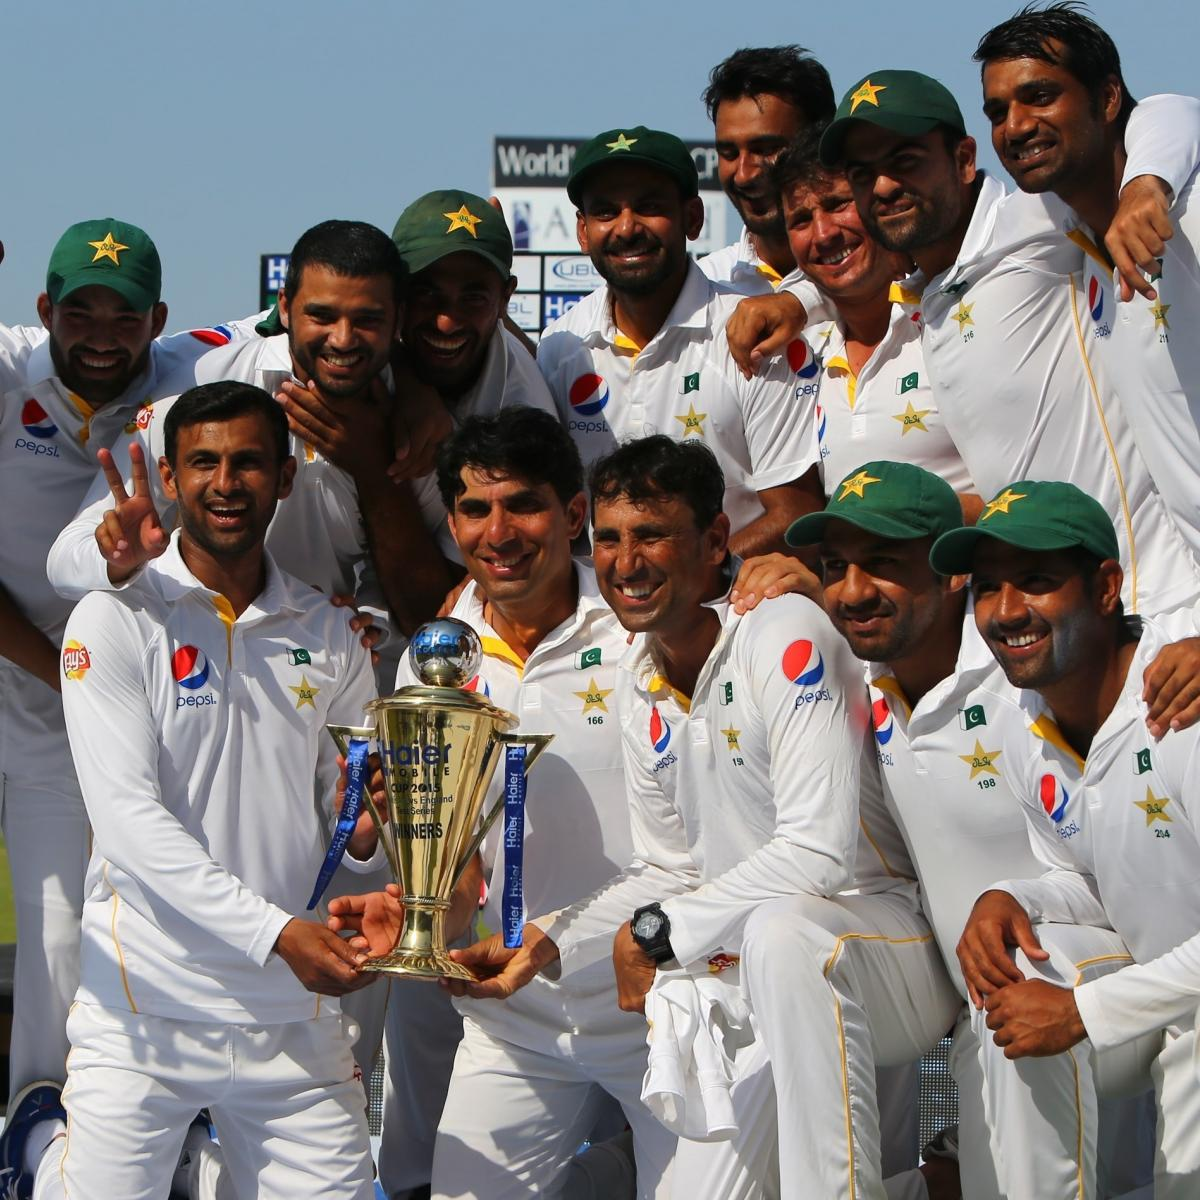 Pakistan Vs England Winners And Losers From The 3rd Test Bleacher Report Latest News Videos And Highlights